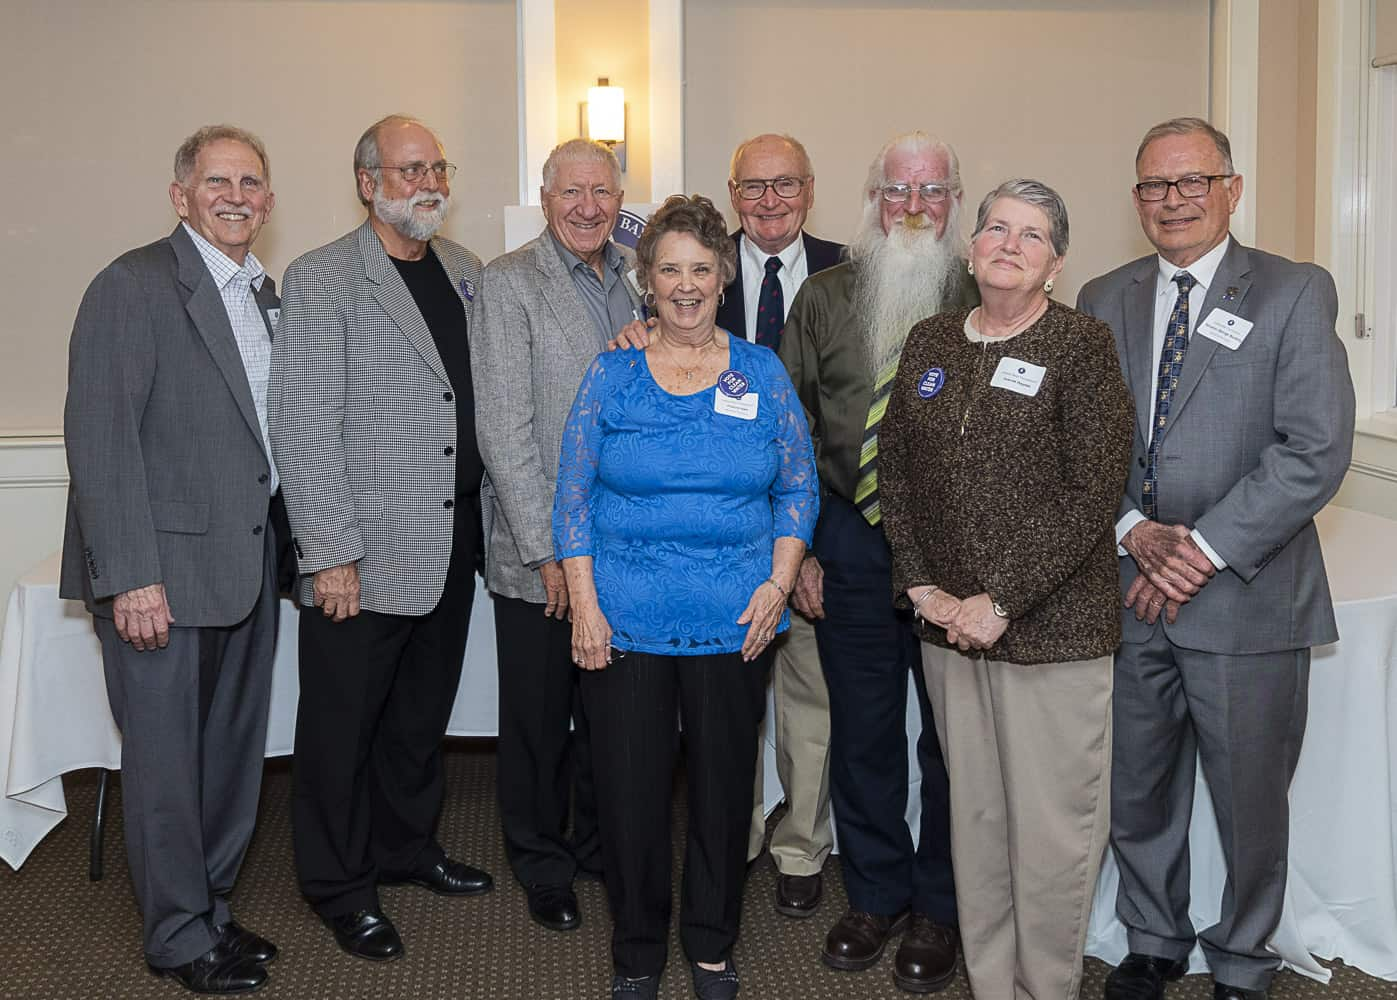 IBF Board members : Left to right, front row: Frances Hart and Joanne Haynes (IBF Member) Left to Right Back Row: Chuck Schonder, Lew Podolske (Treasurer), Al Allenspach, Dave Joeger (Prisident), Ken Haynes, Sen. George Bunting (former state senator)